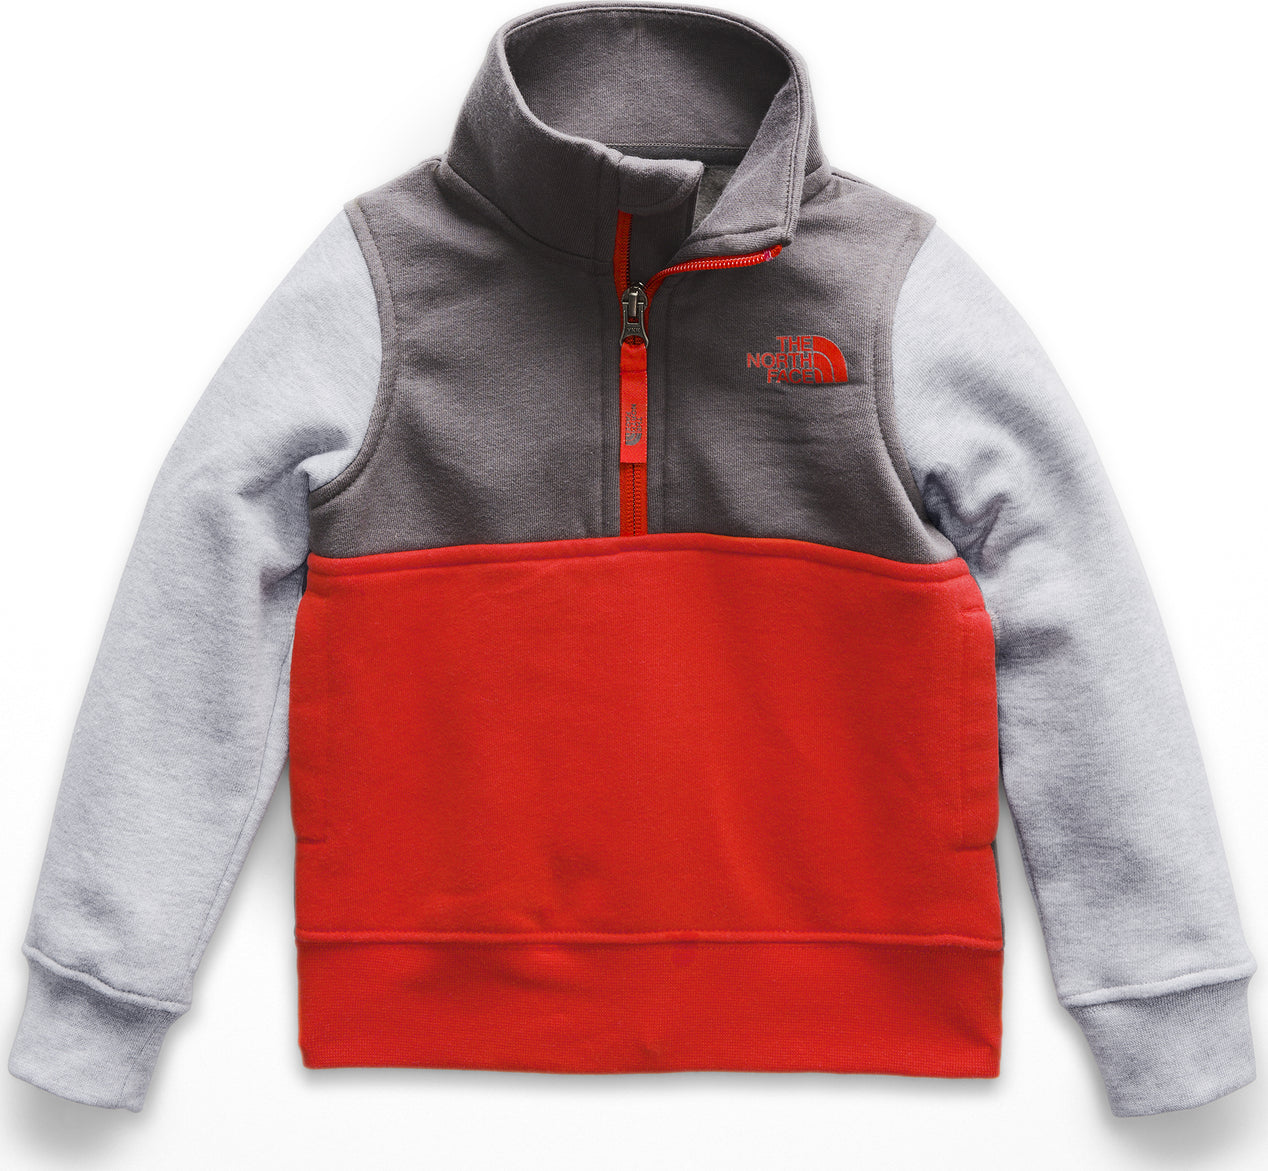 4f7fc4624 The North Face Logowear 1/4 Zip - Toddler Boy's   Altitude Sports